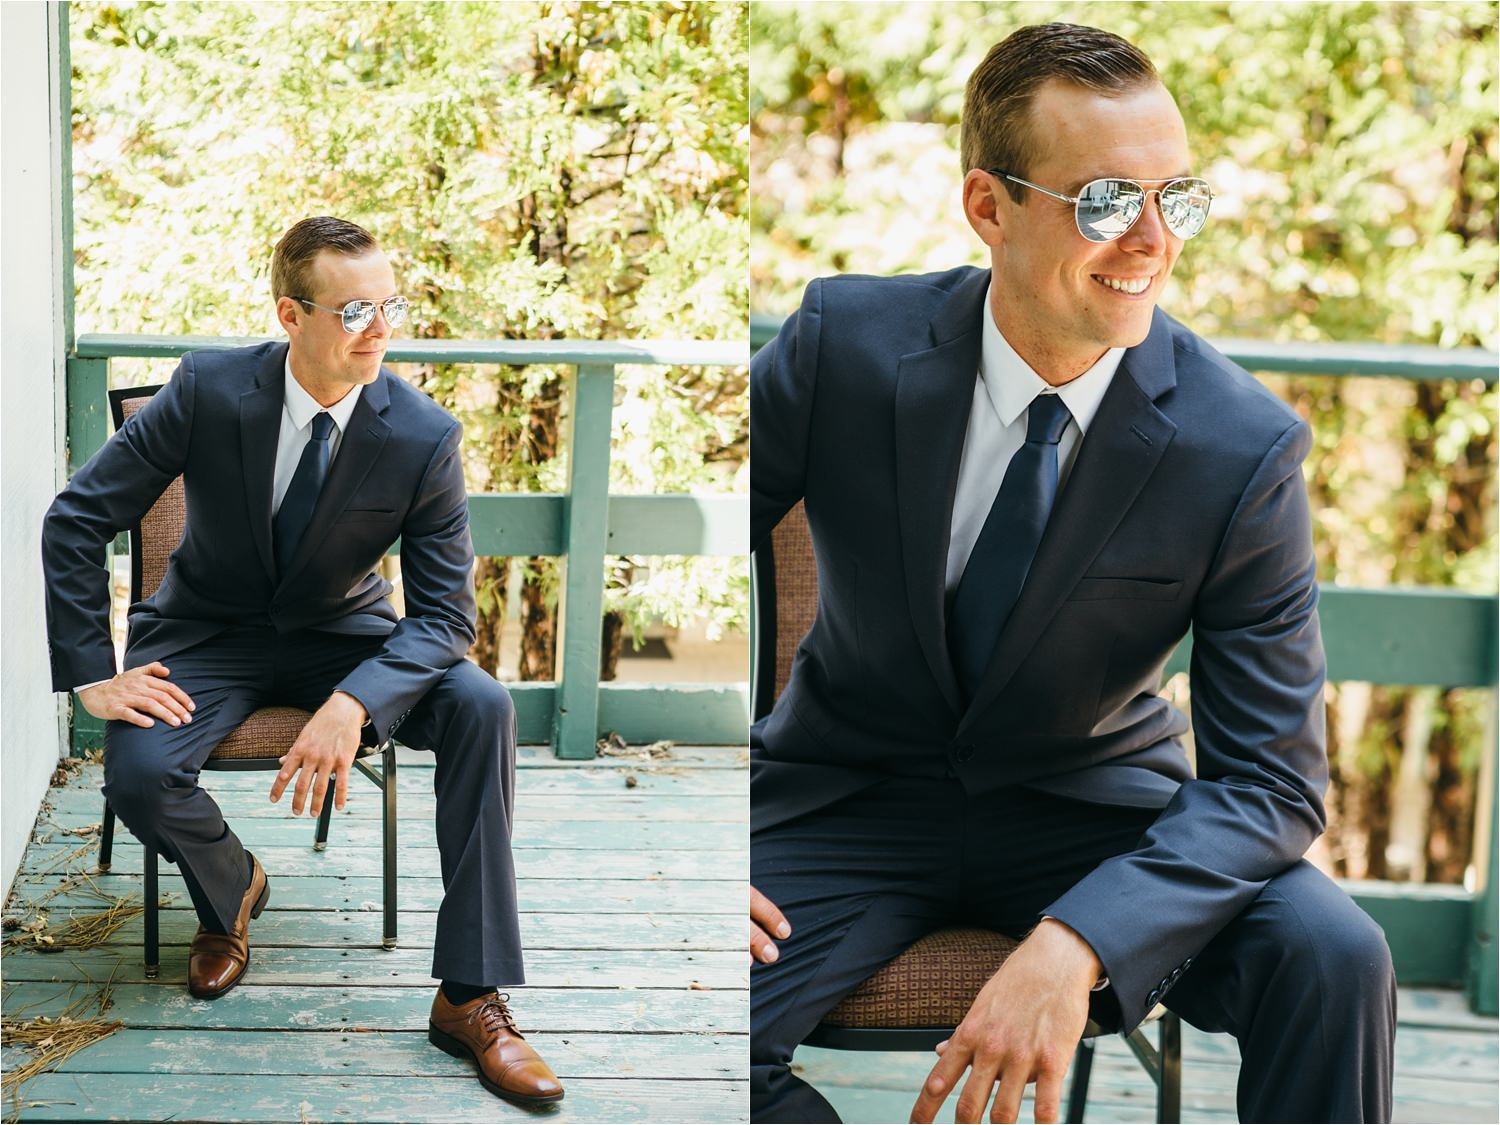 Groom in Sunglasses - Summer Camp Themed Mountain Wedding in Lake Arrowhead - https://brittneyhannonphotography.com